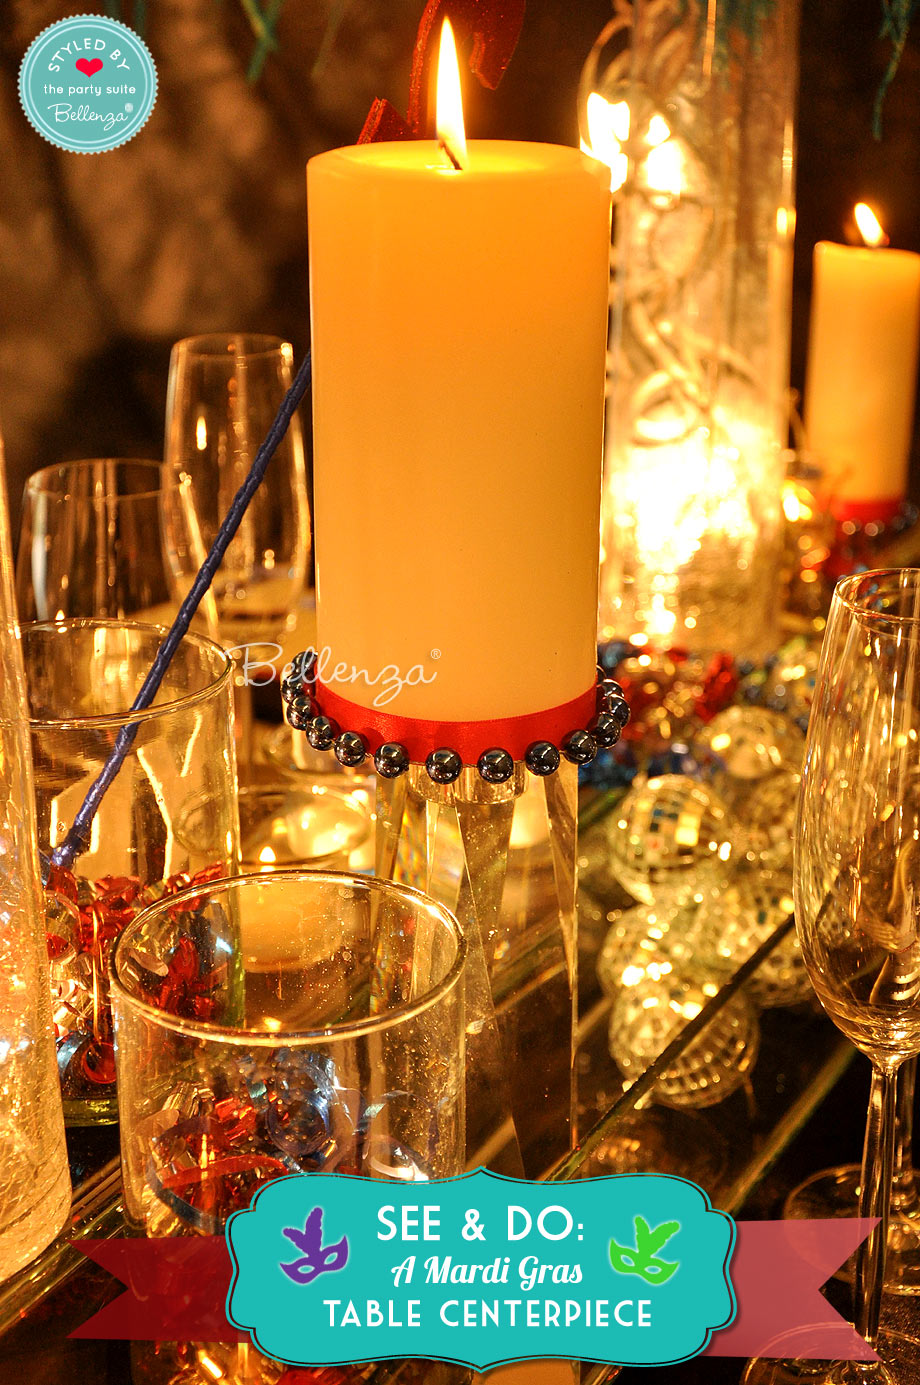 Pillar candle on stand for Mardi Gras centerpiece.